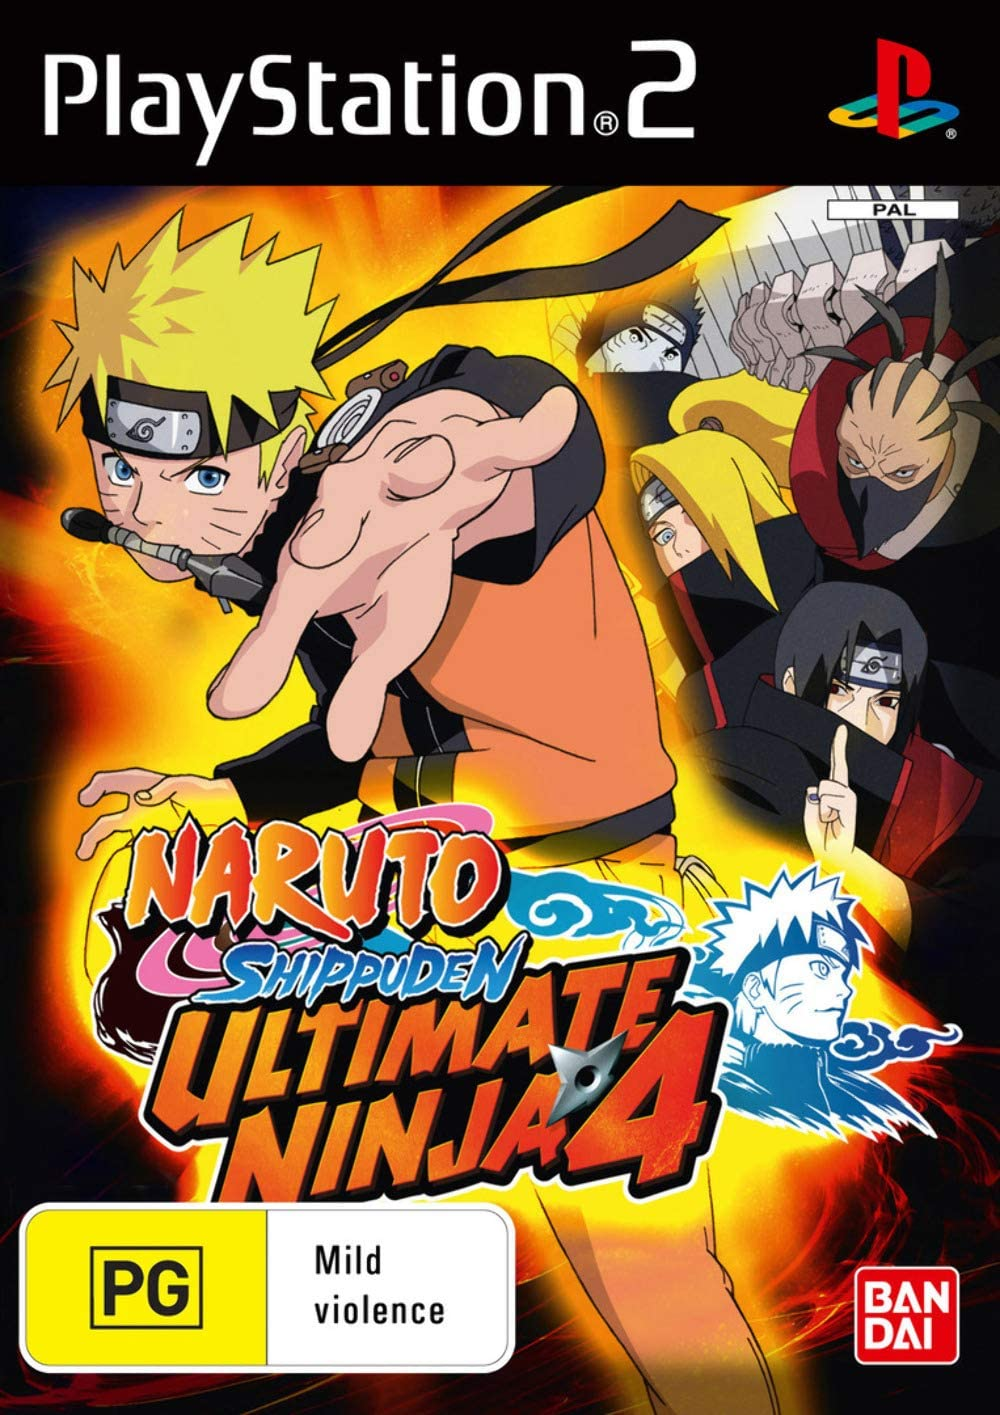 Ultimate Ninja 4: Naruto Shippuden (PS2): Amazon.co.uk: PC & Video Games